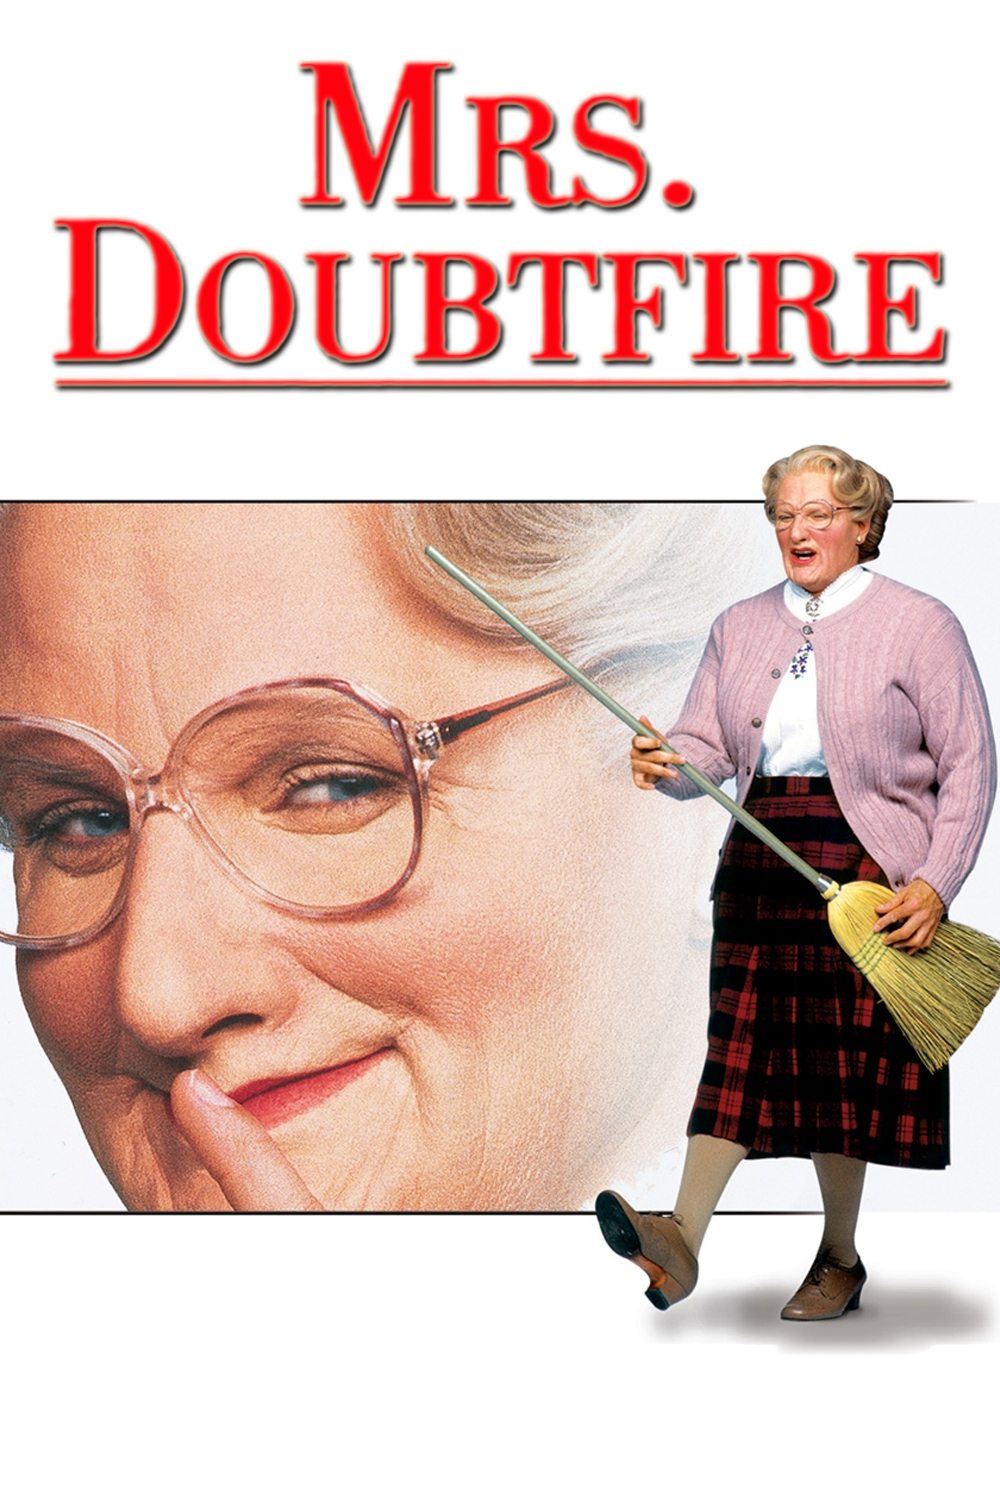 an analysis of mrs doubtfire by anne fine Anne fine was born and educated in the midlands and now lives in county   and madame doubtfire became the major feature film 'mrs doubtfire' starring.